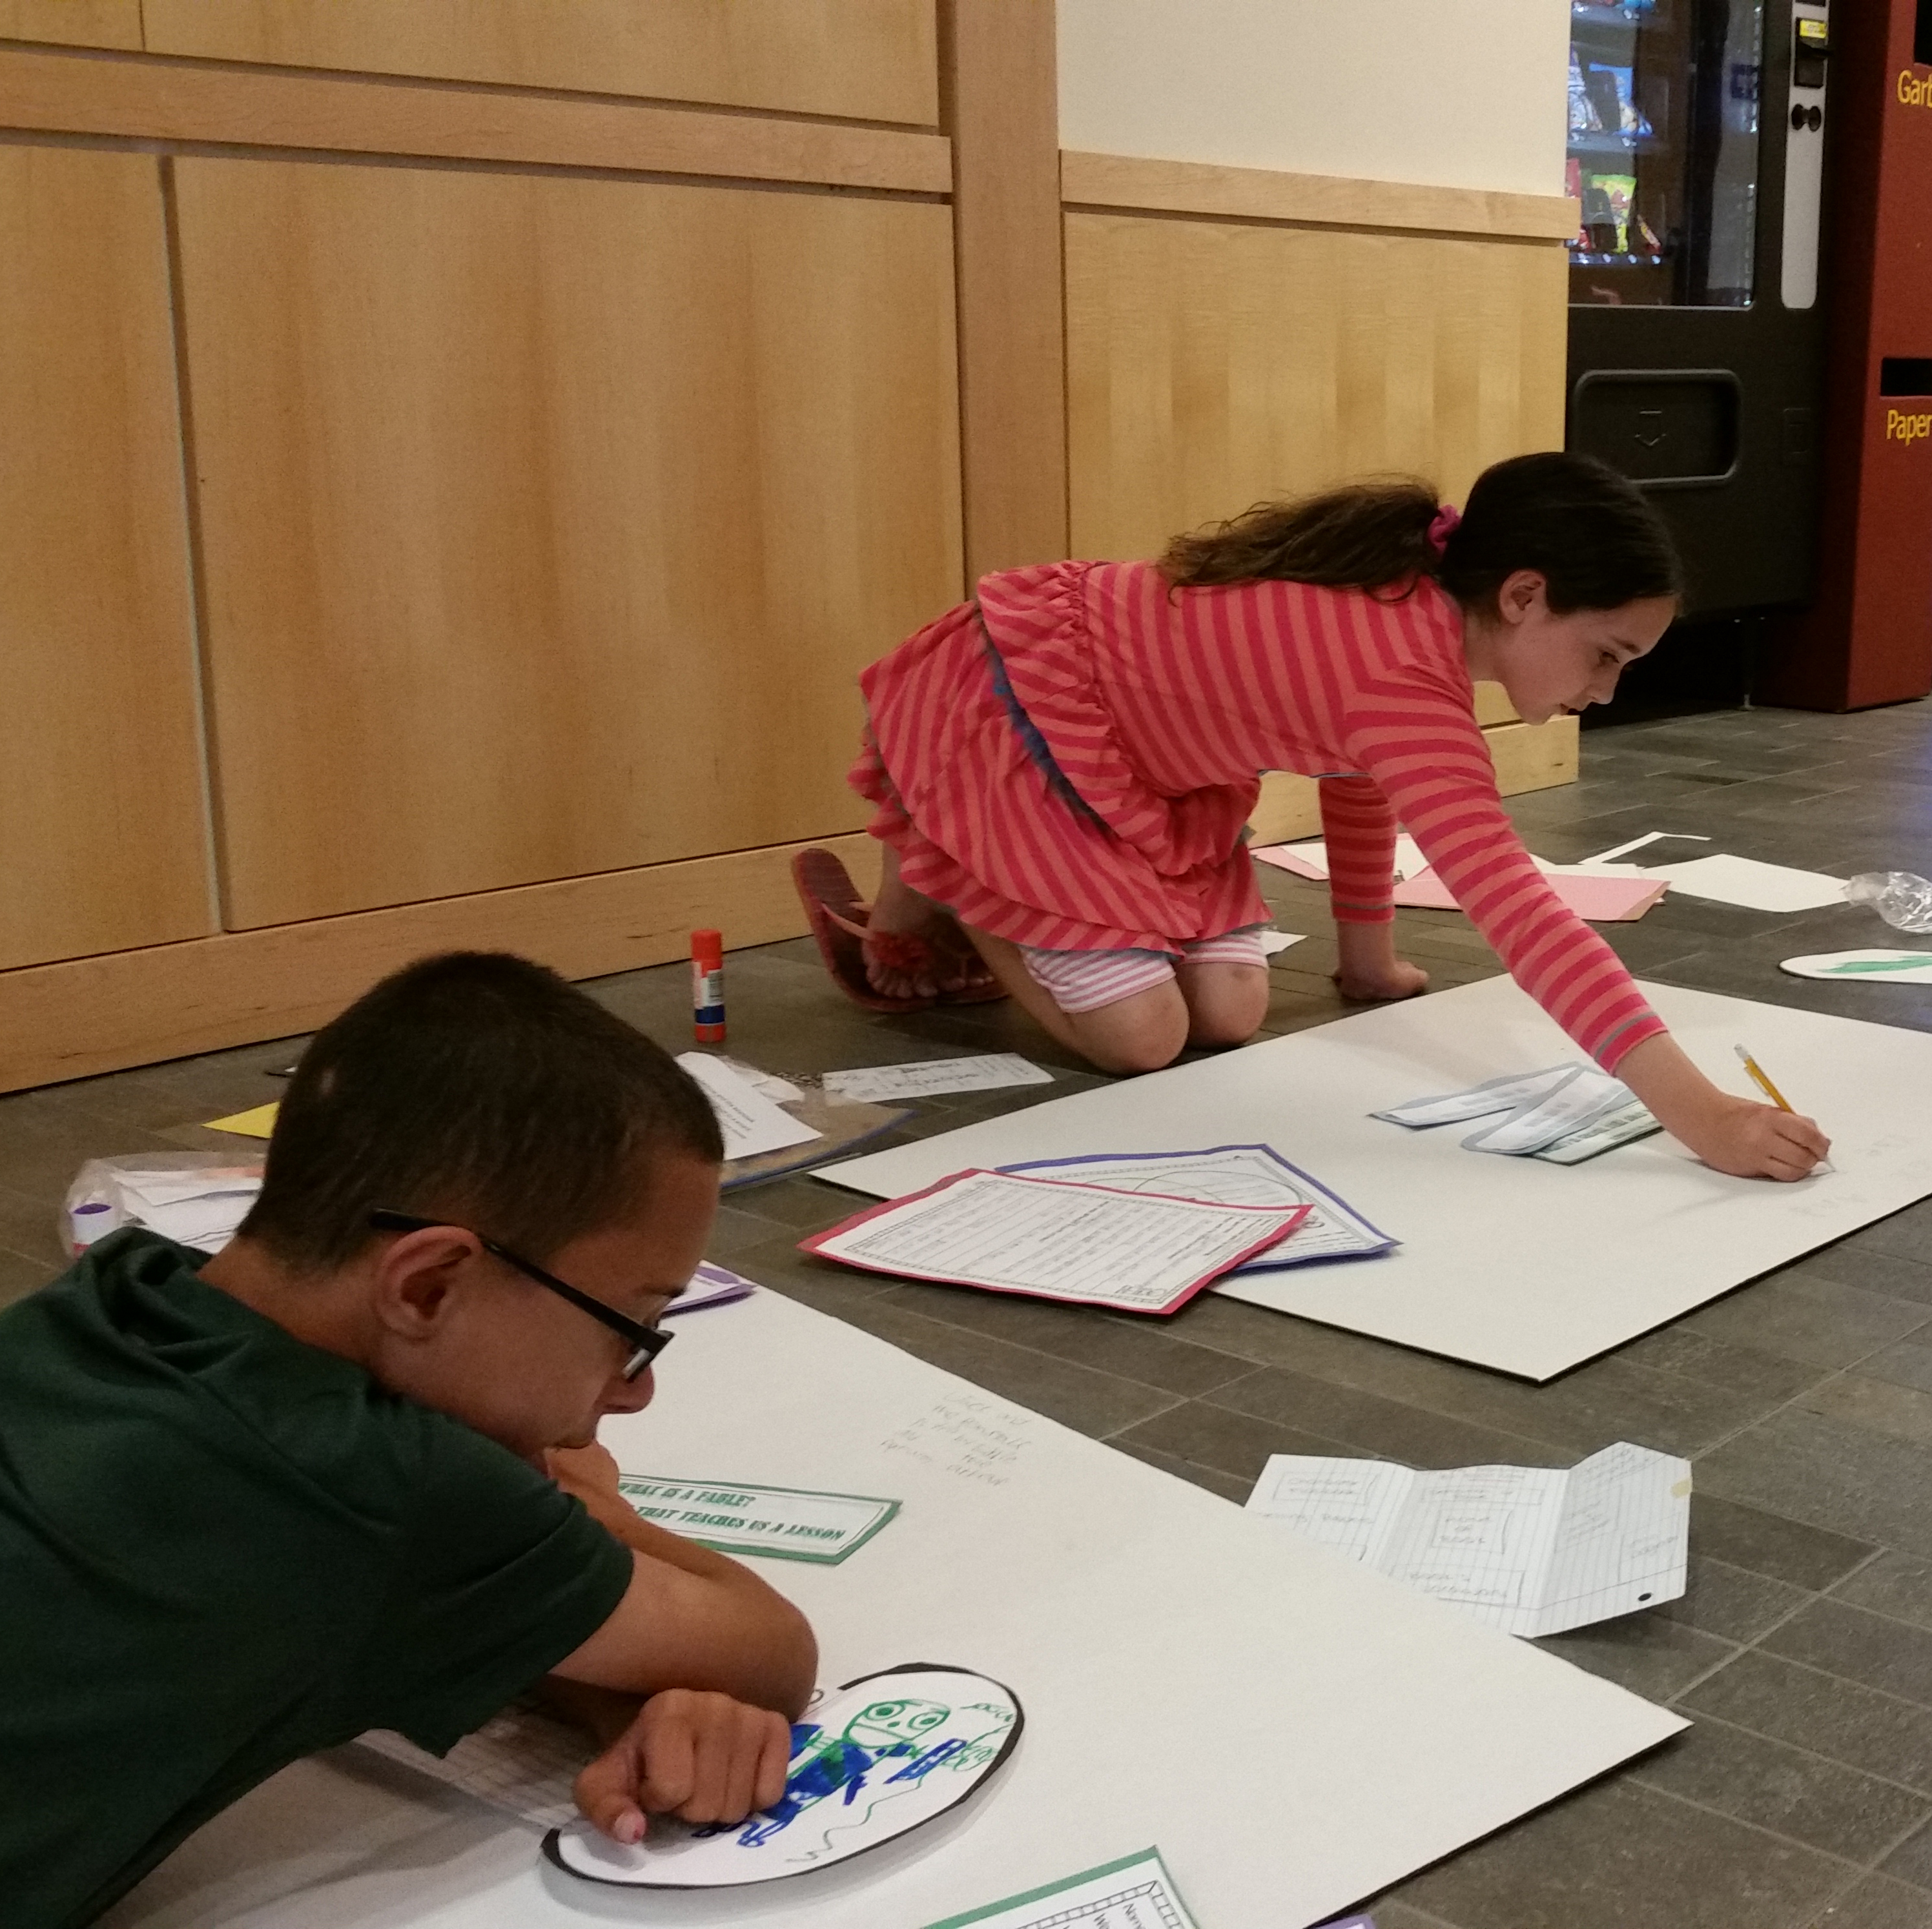 boy and girl students working on summer camp project